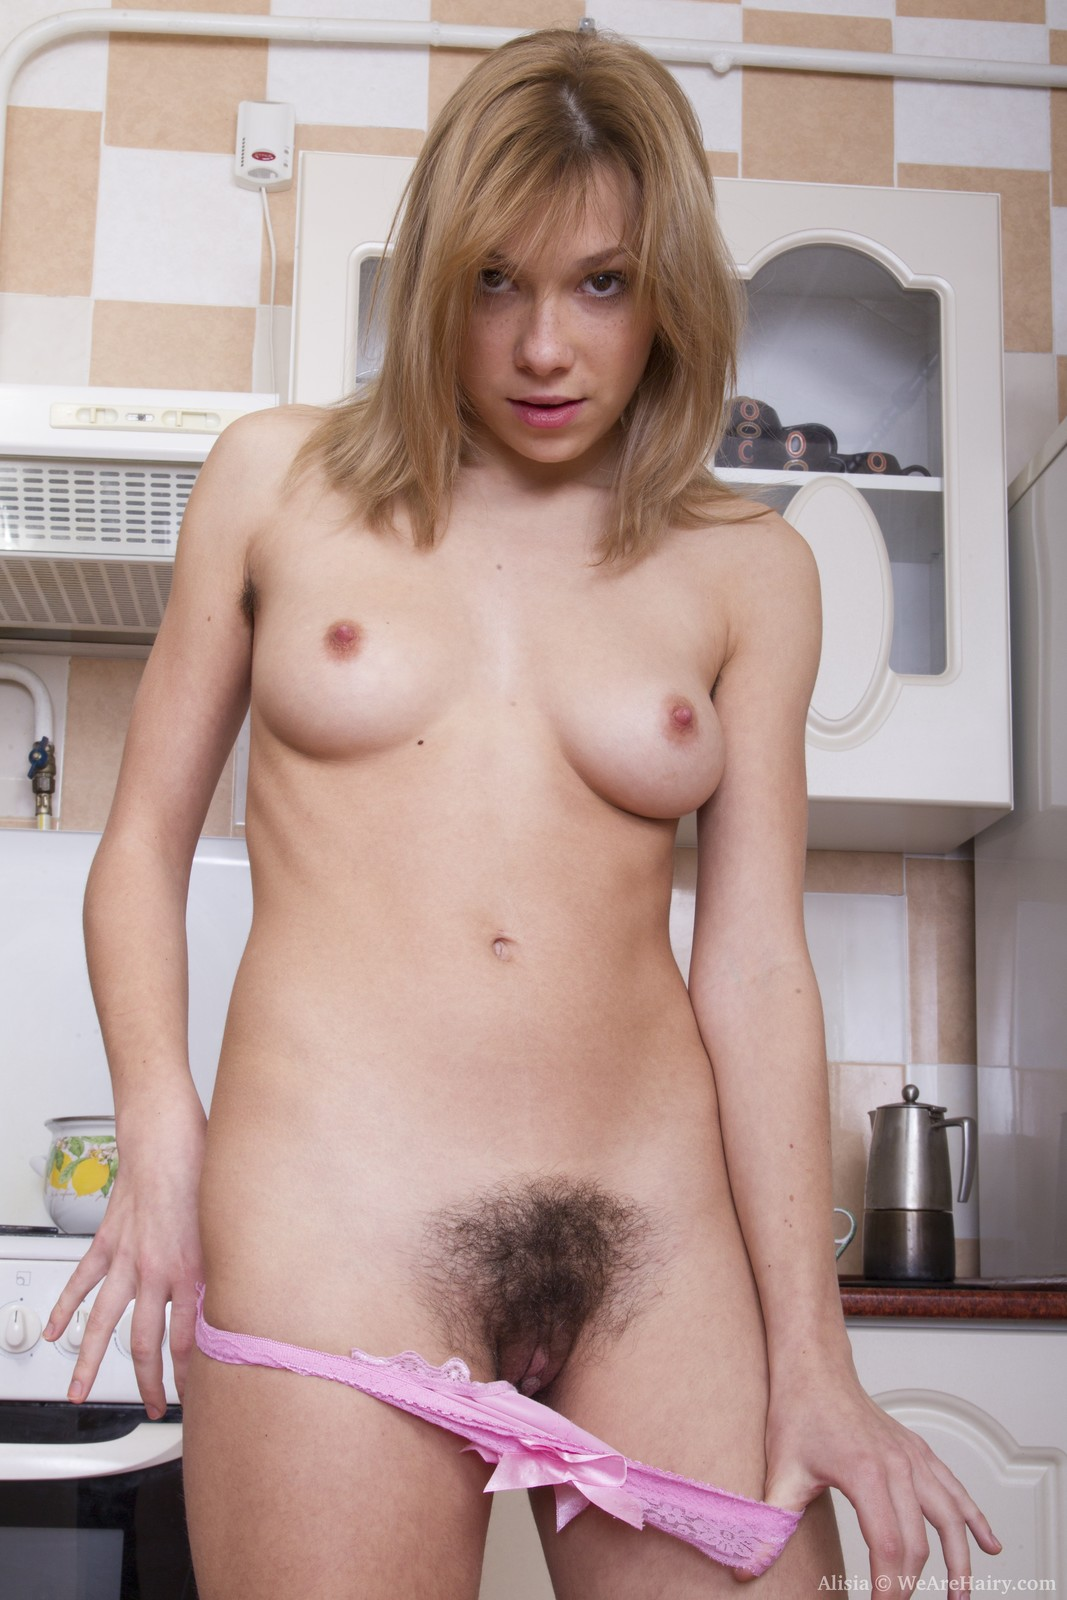 Variant Beautiful natural hairy nude girls sorry